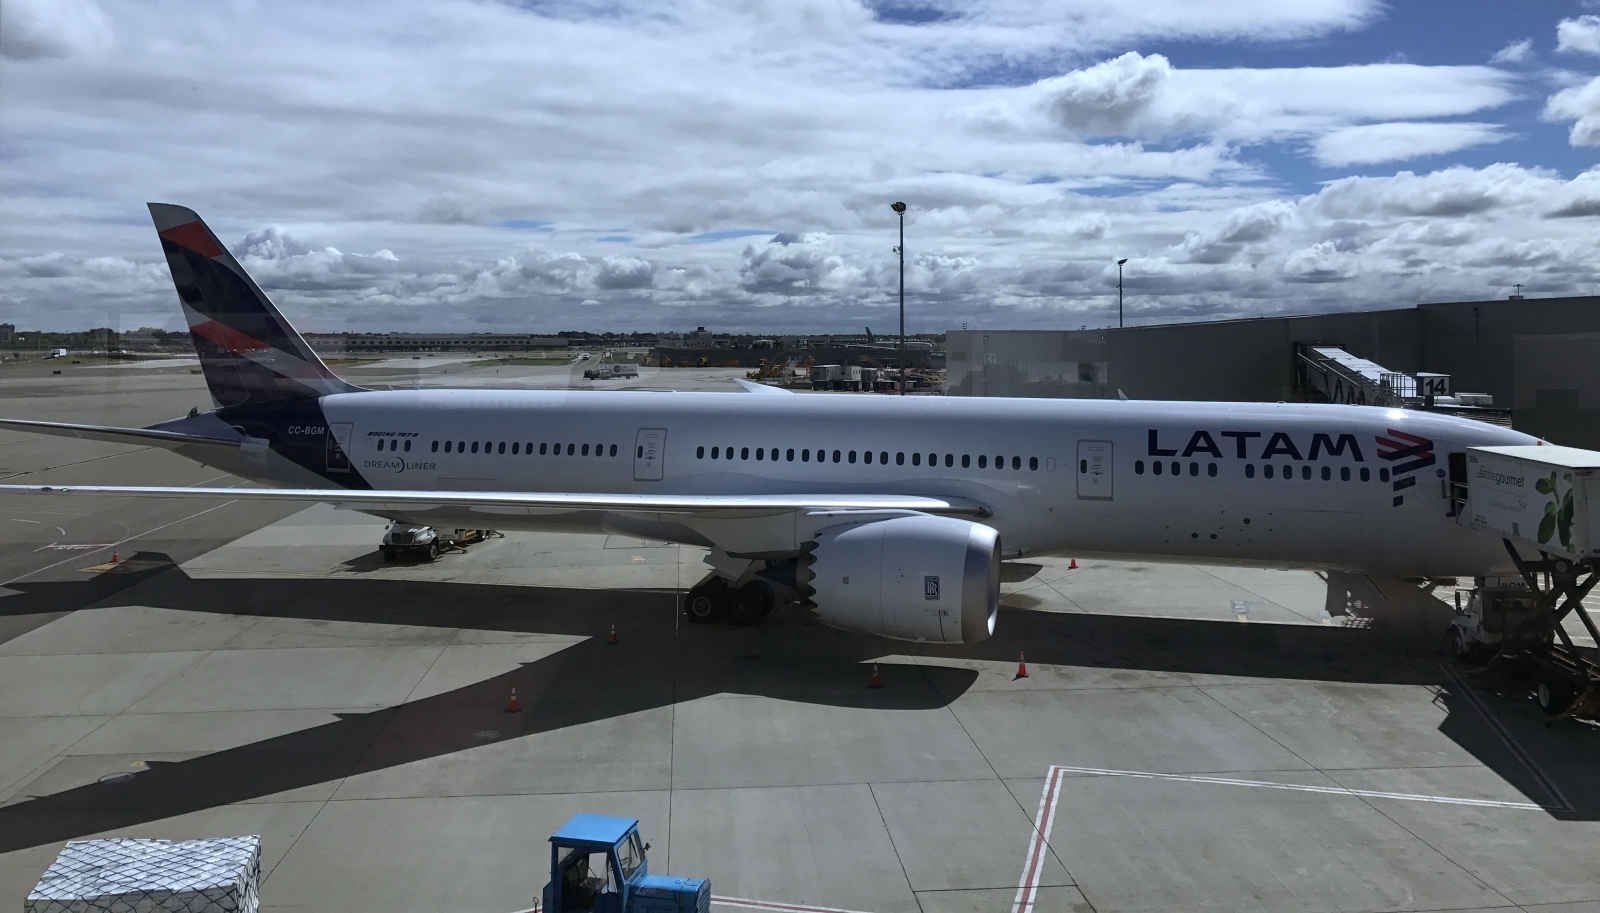 A Latam Airlines airliner sits at the gate at John F. Kennedy International Airport in New York